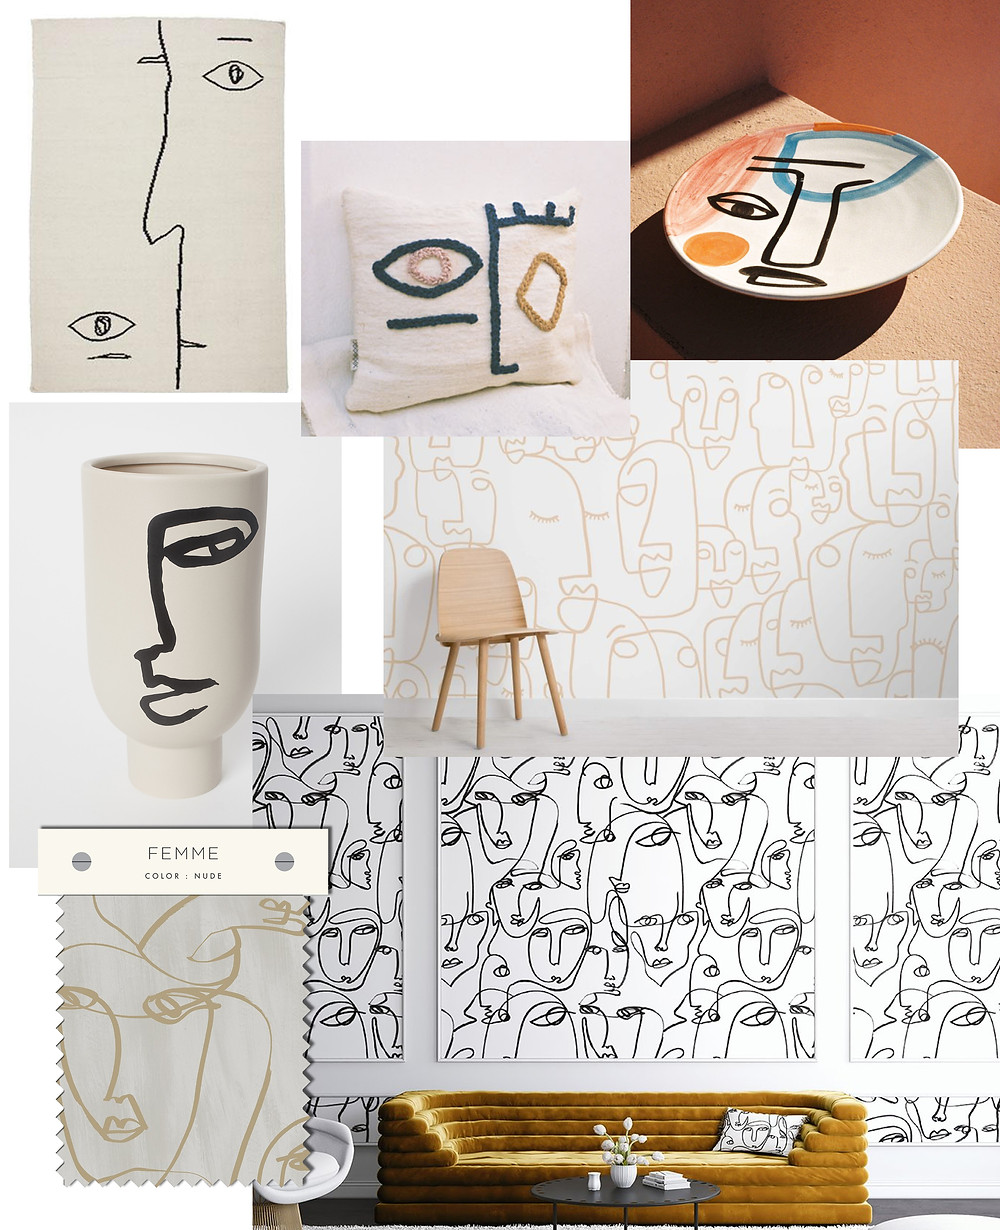 Line drawing themed home goods linked in the text